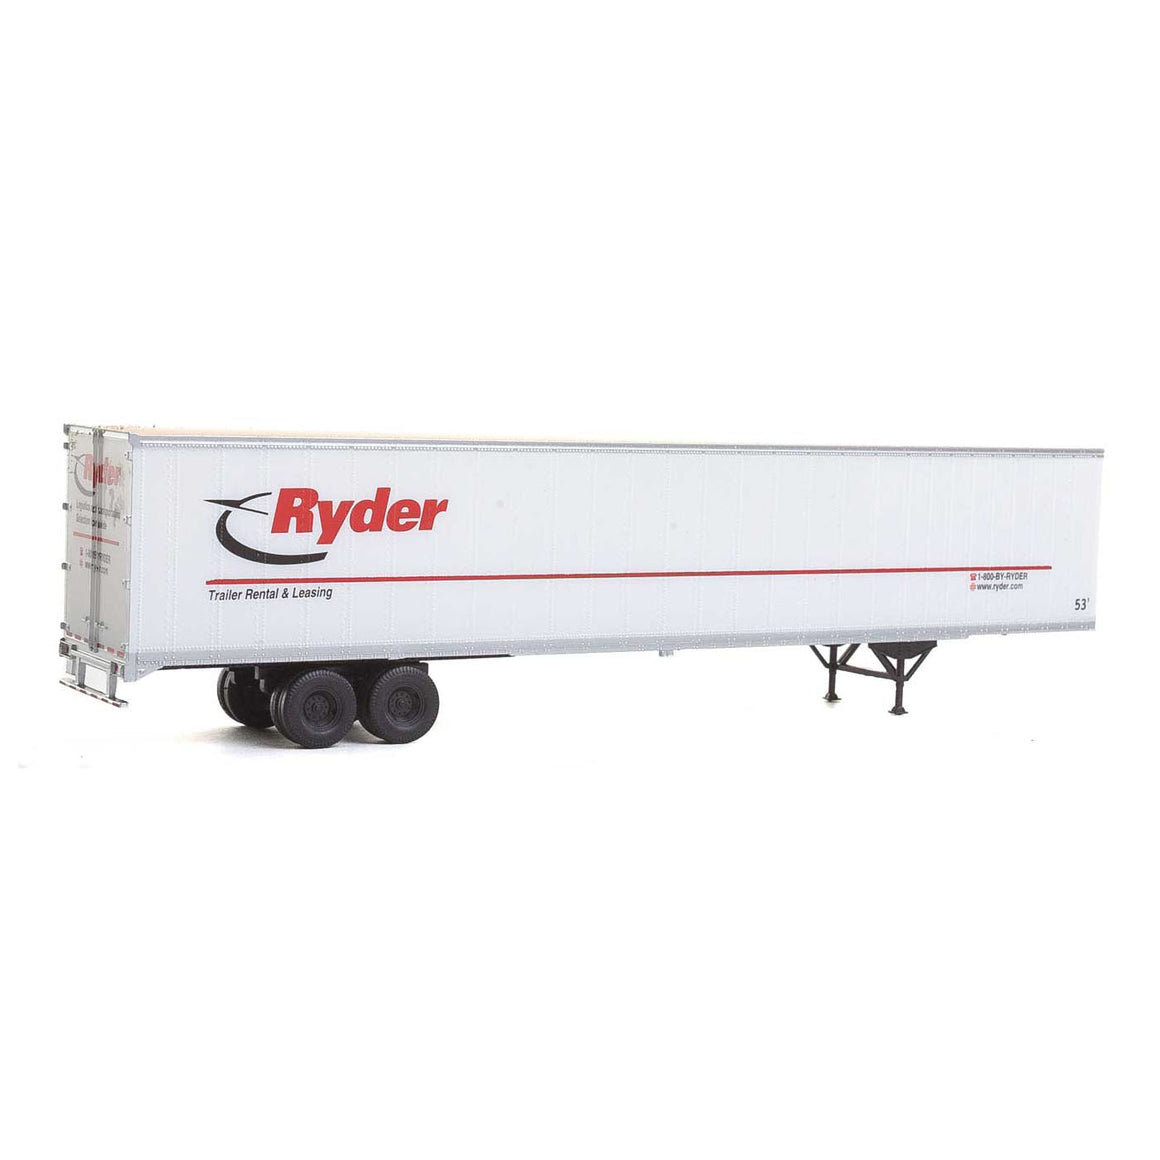 HO Scale: 53' Stoughton Trailer - Ryder - 2 Pack